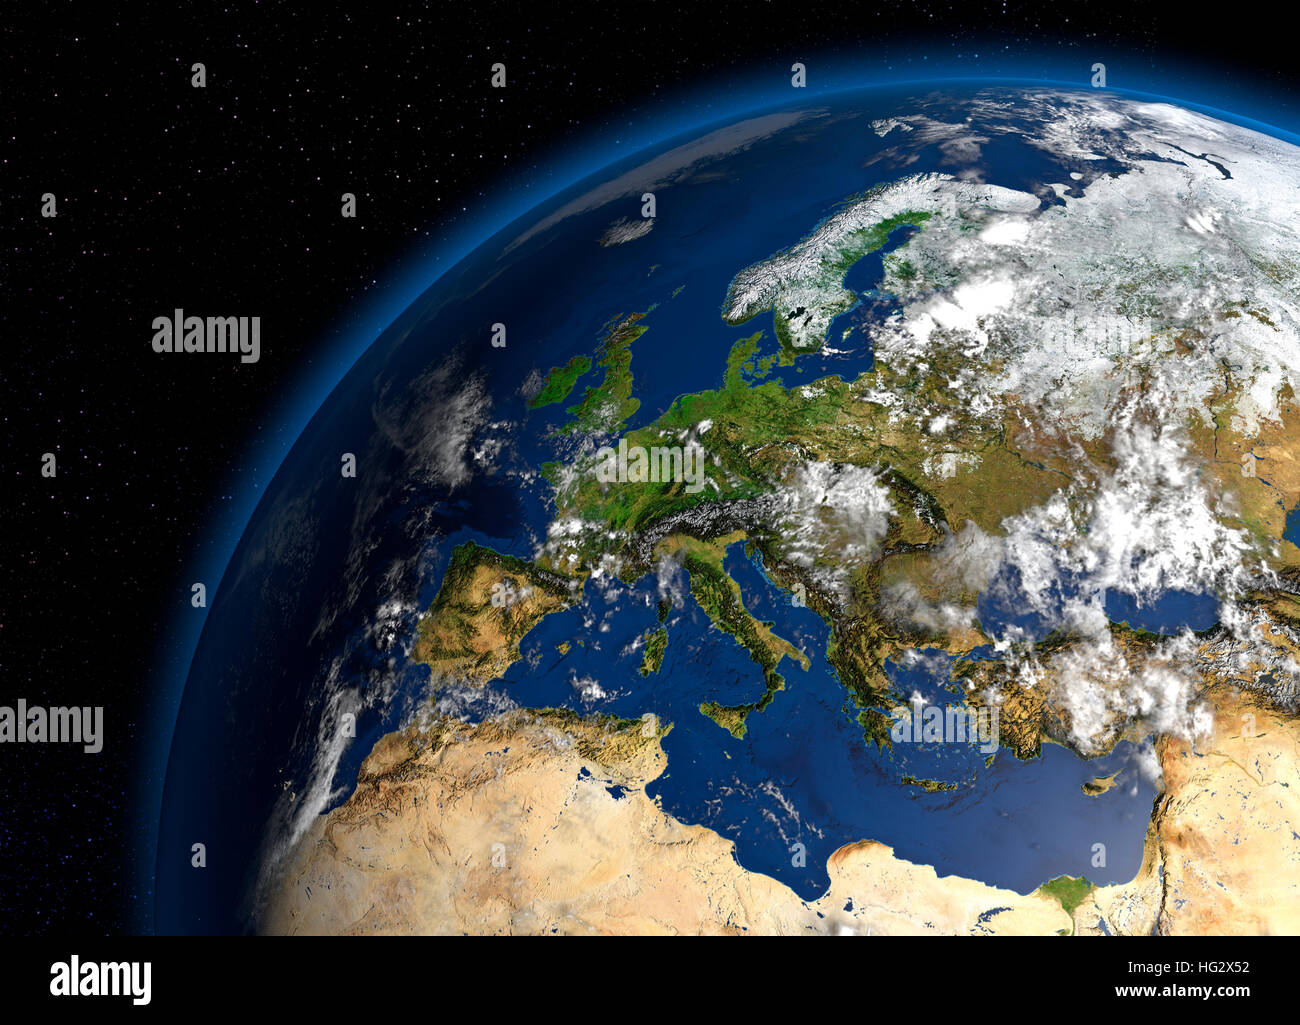 Earth viewed from space showing Europe. Realistic digital illustration including relief map hill shading of terrain. - Stock Image